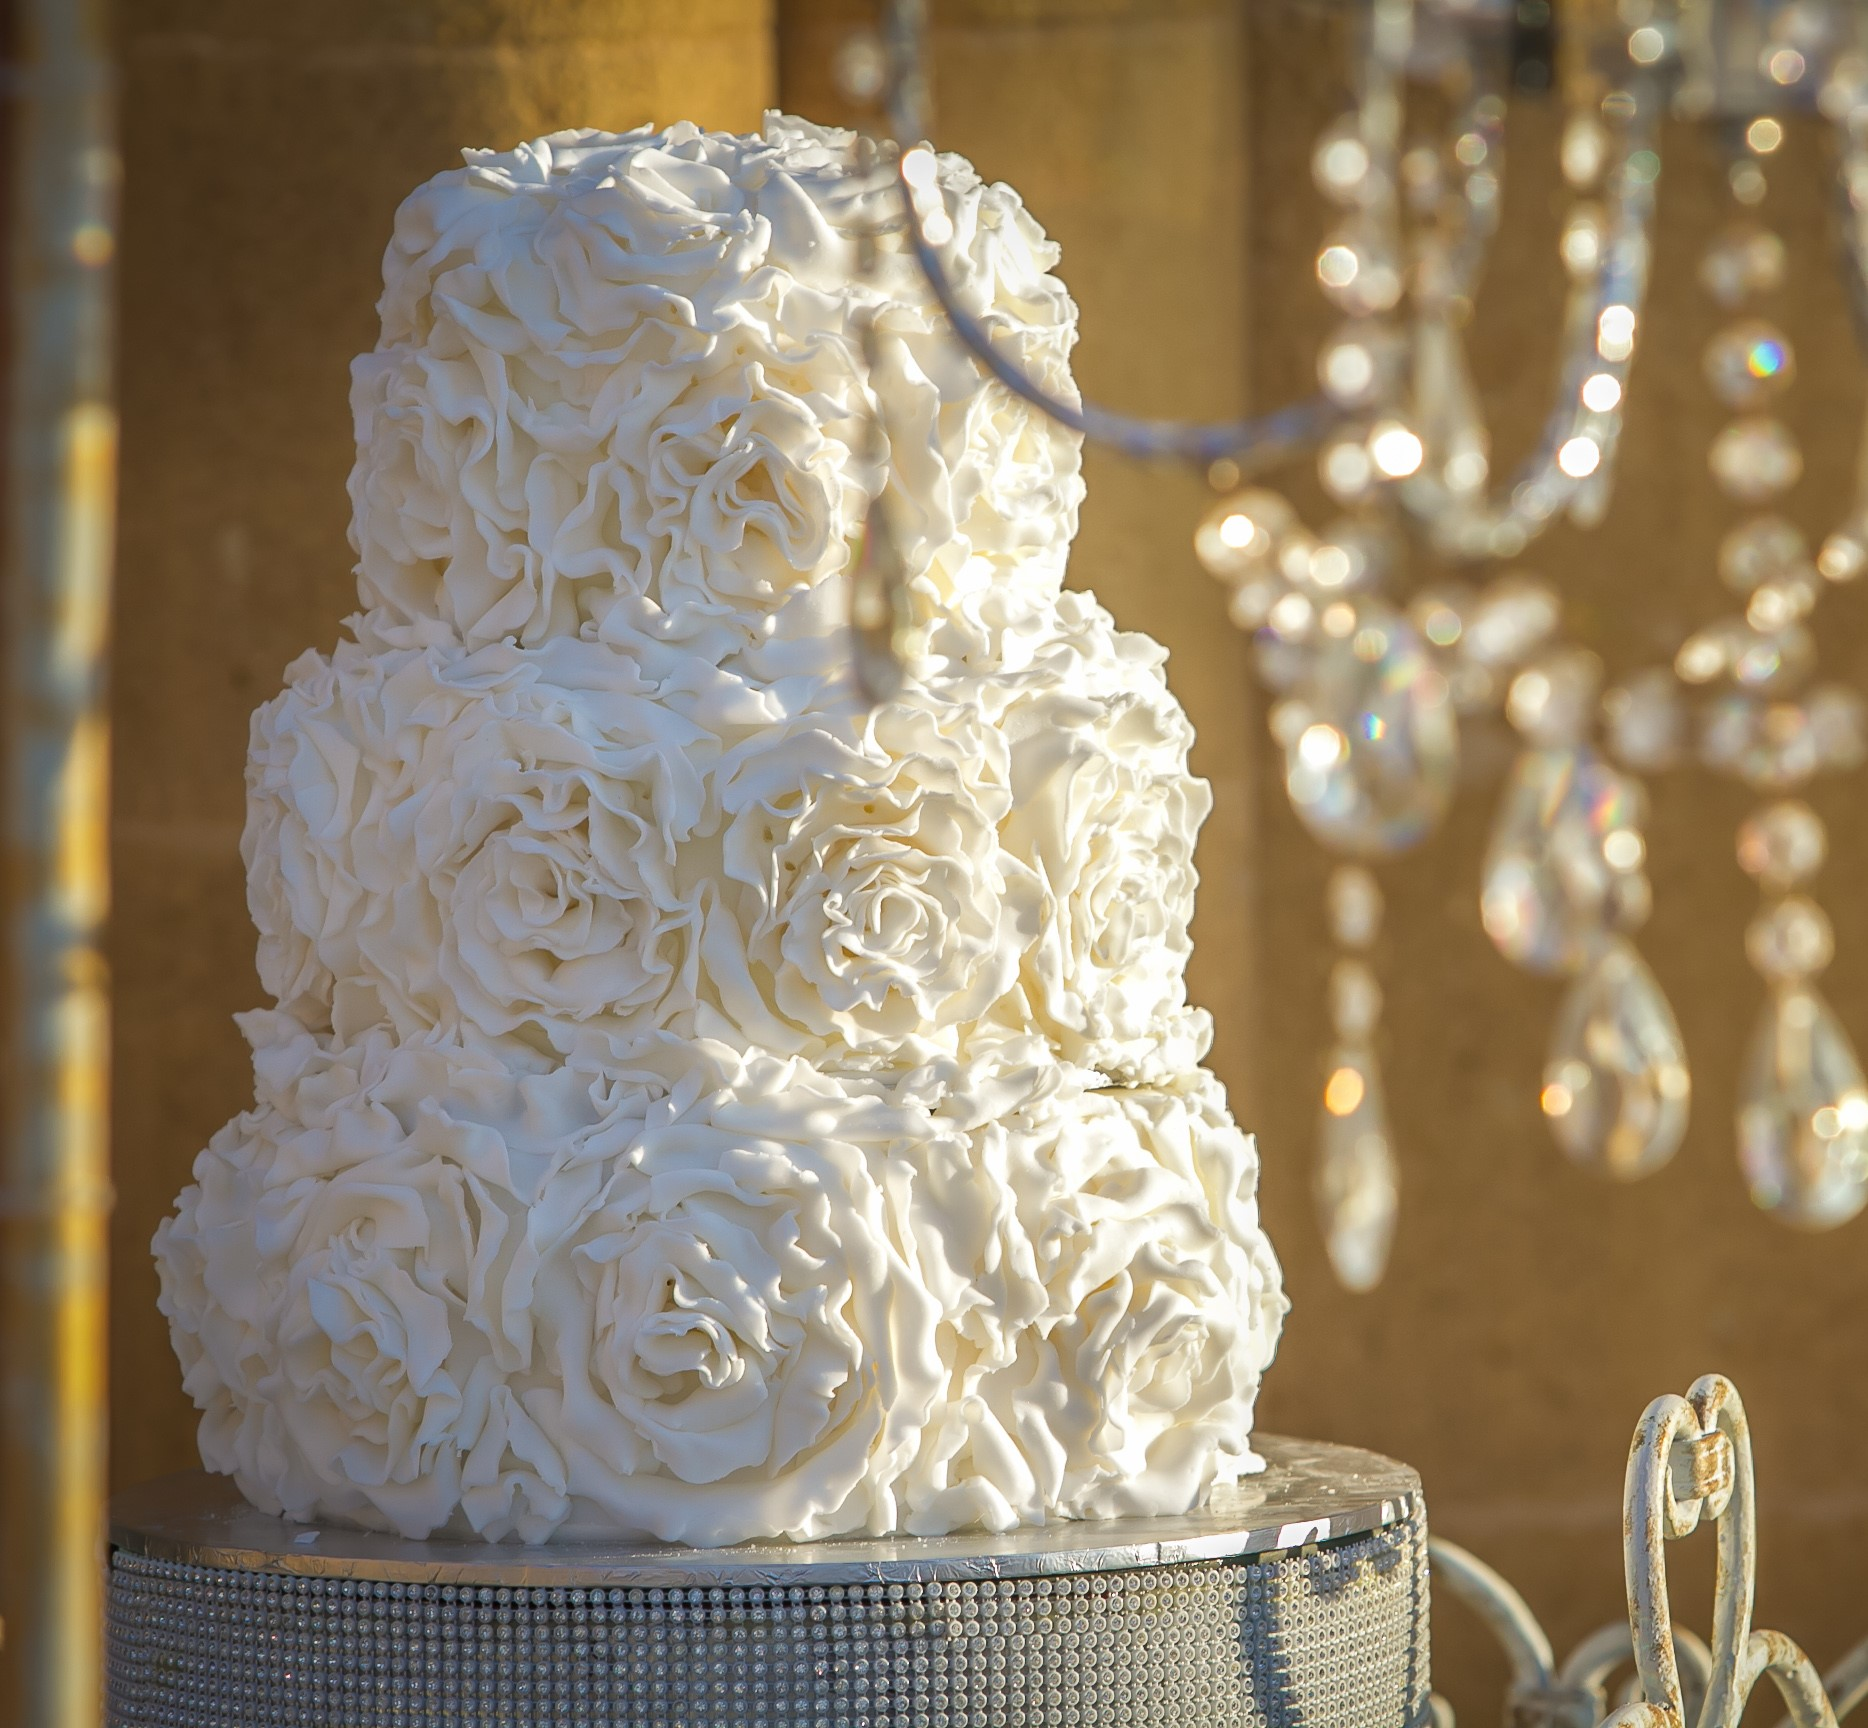 Wedding cakes in Northern Cyprus (46)